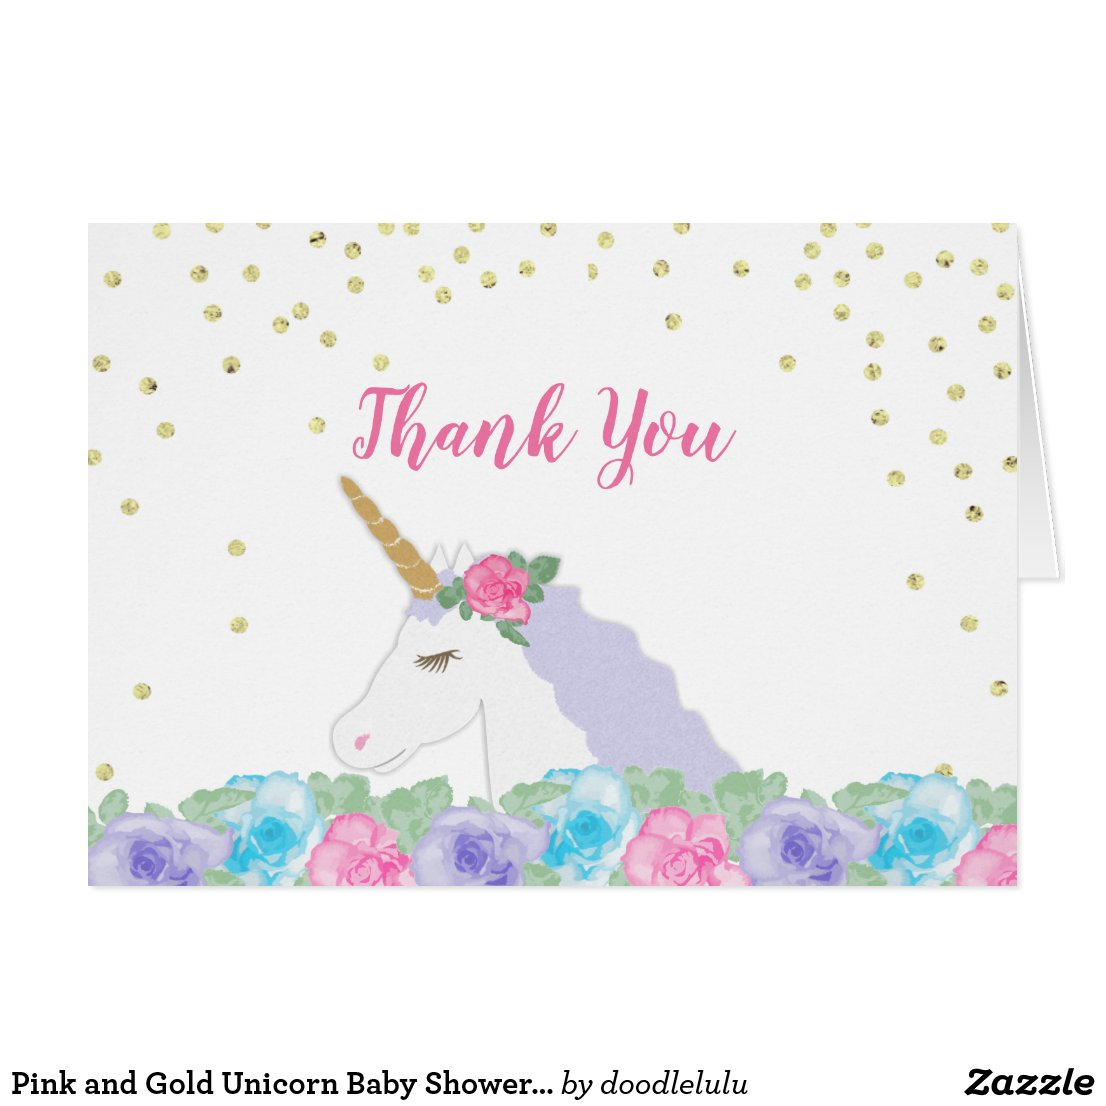 Pink and Gold Unicorn Baby Shower Folded Thank You